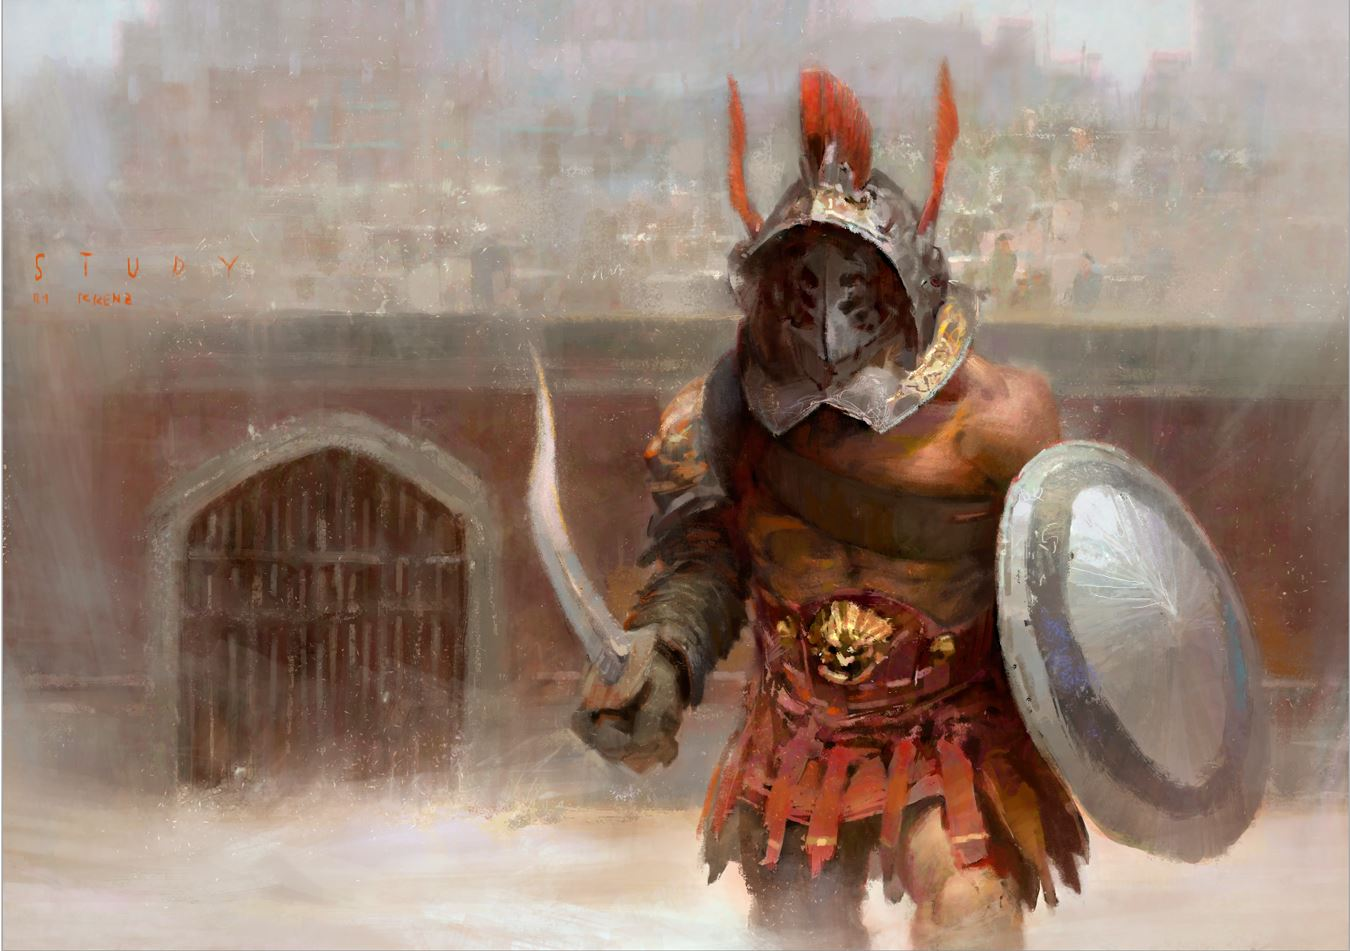 Krenz_Cushart_digital_painting_illustration_gladiator_study